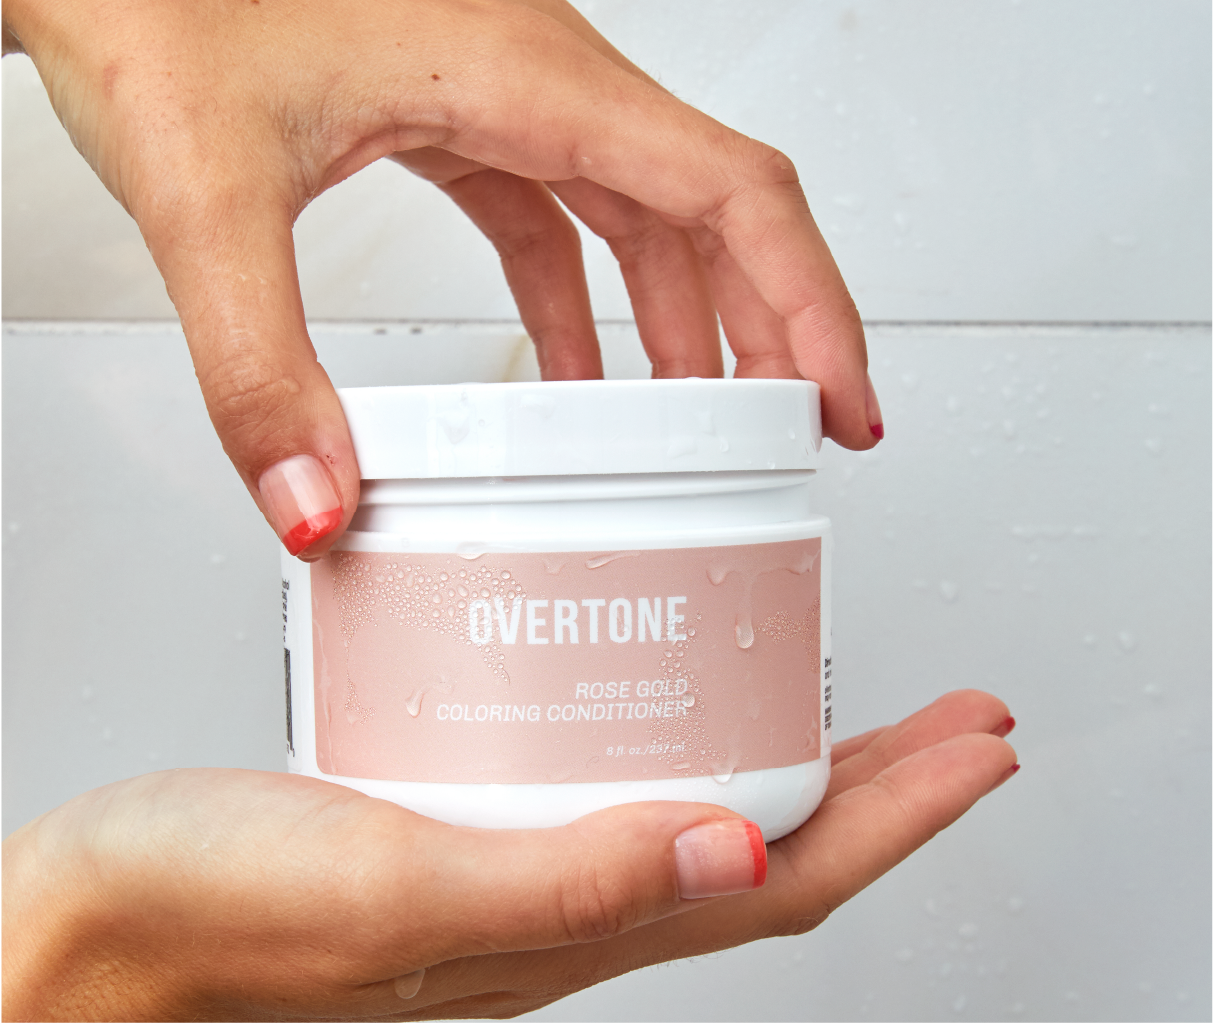 image of hands holding rose gold coloring conditioner